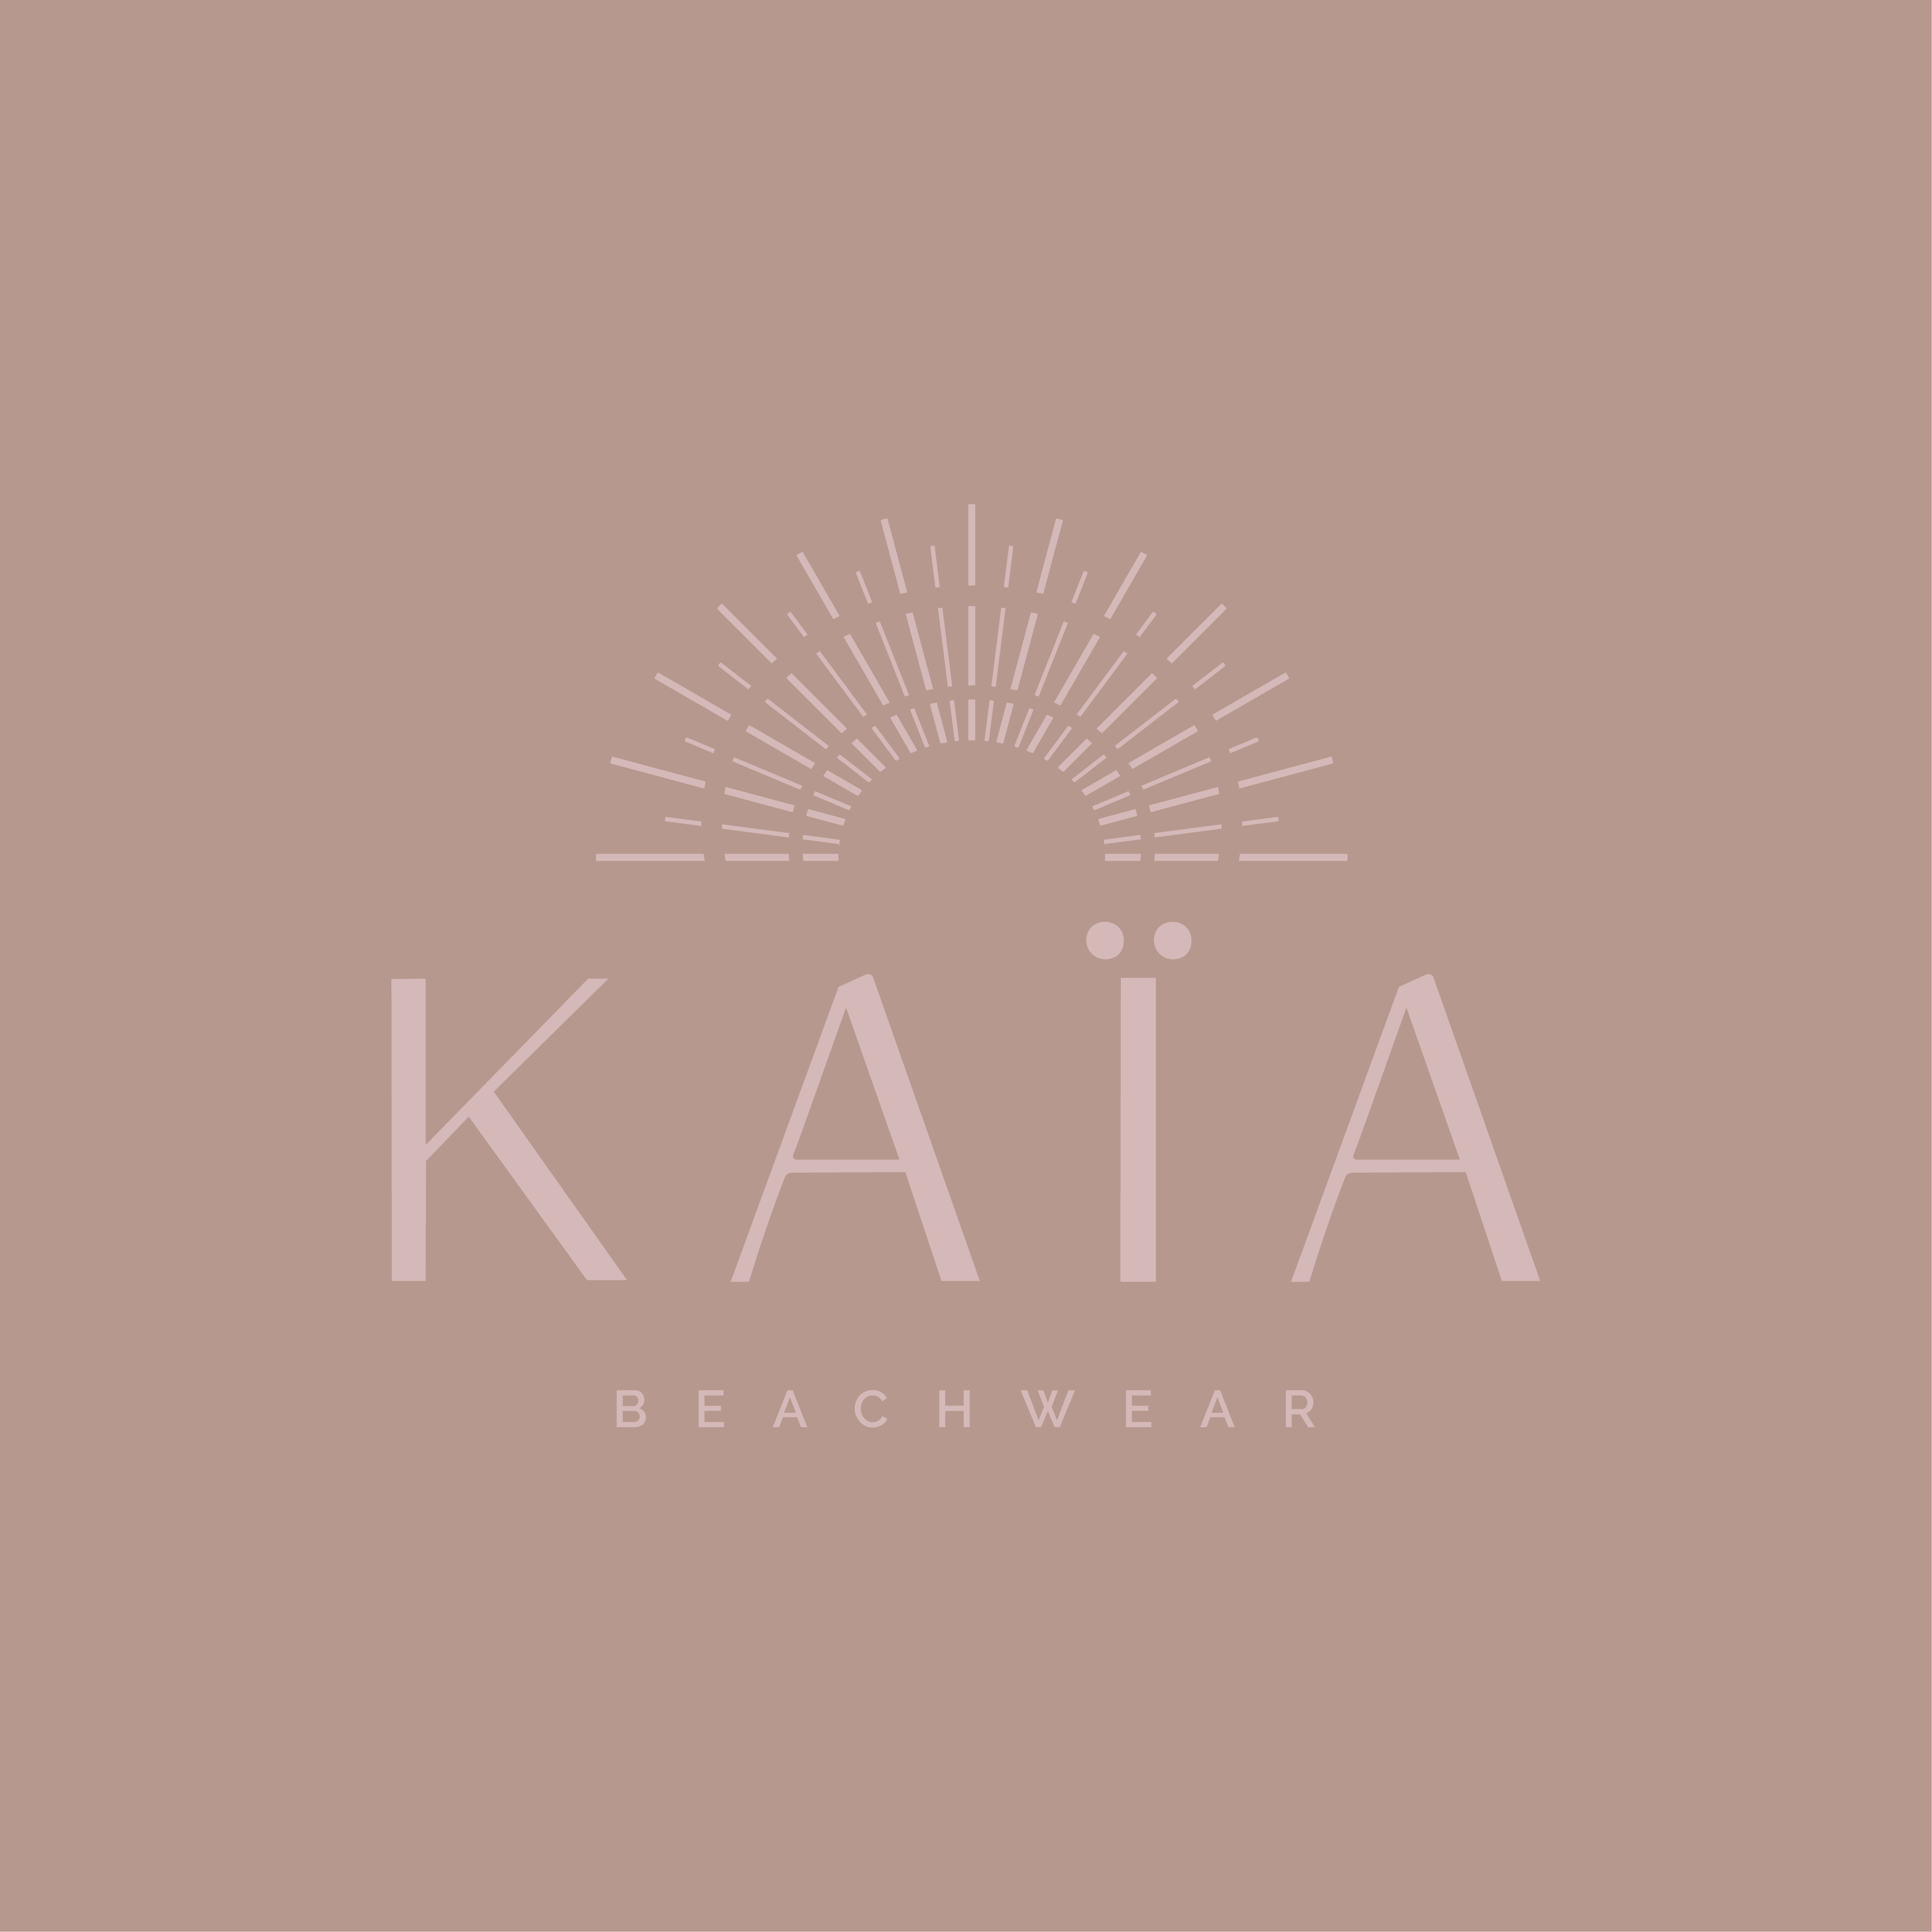 Logo competition for a Sustainable Fashion Beachwear brand [guaranteed usage of logo]